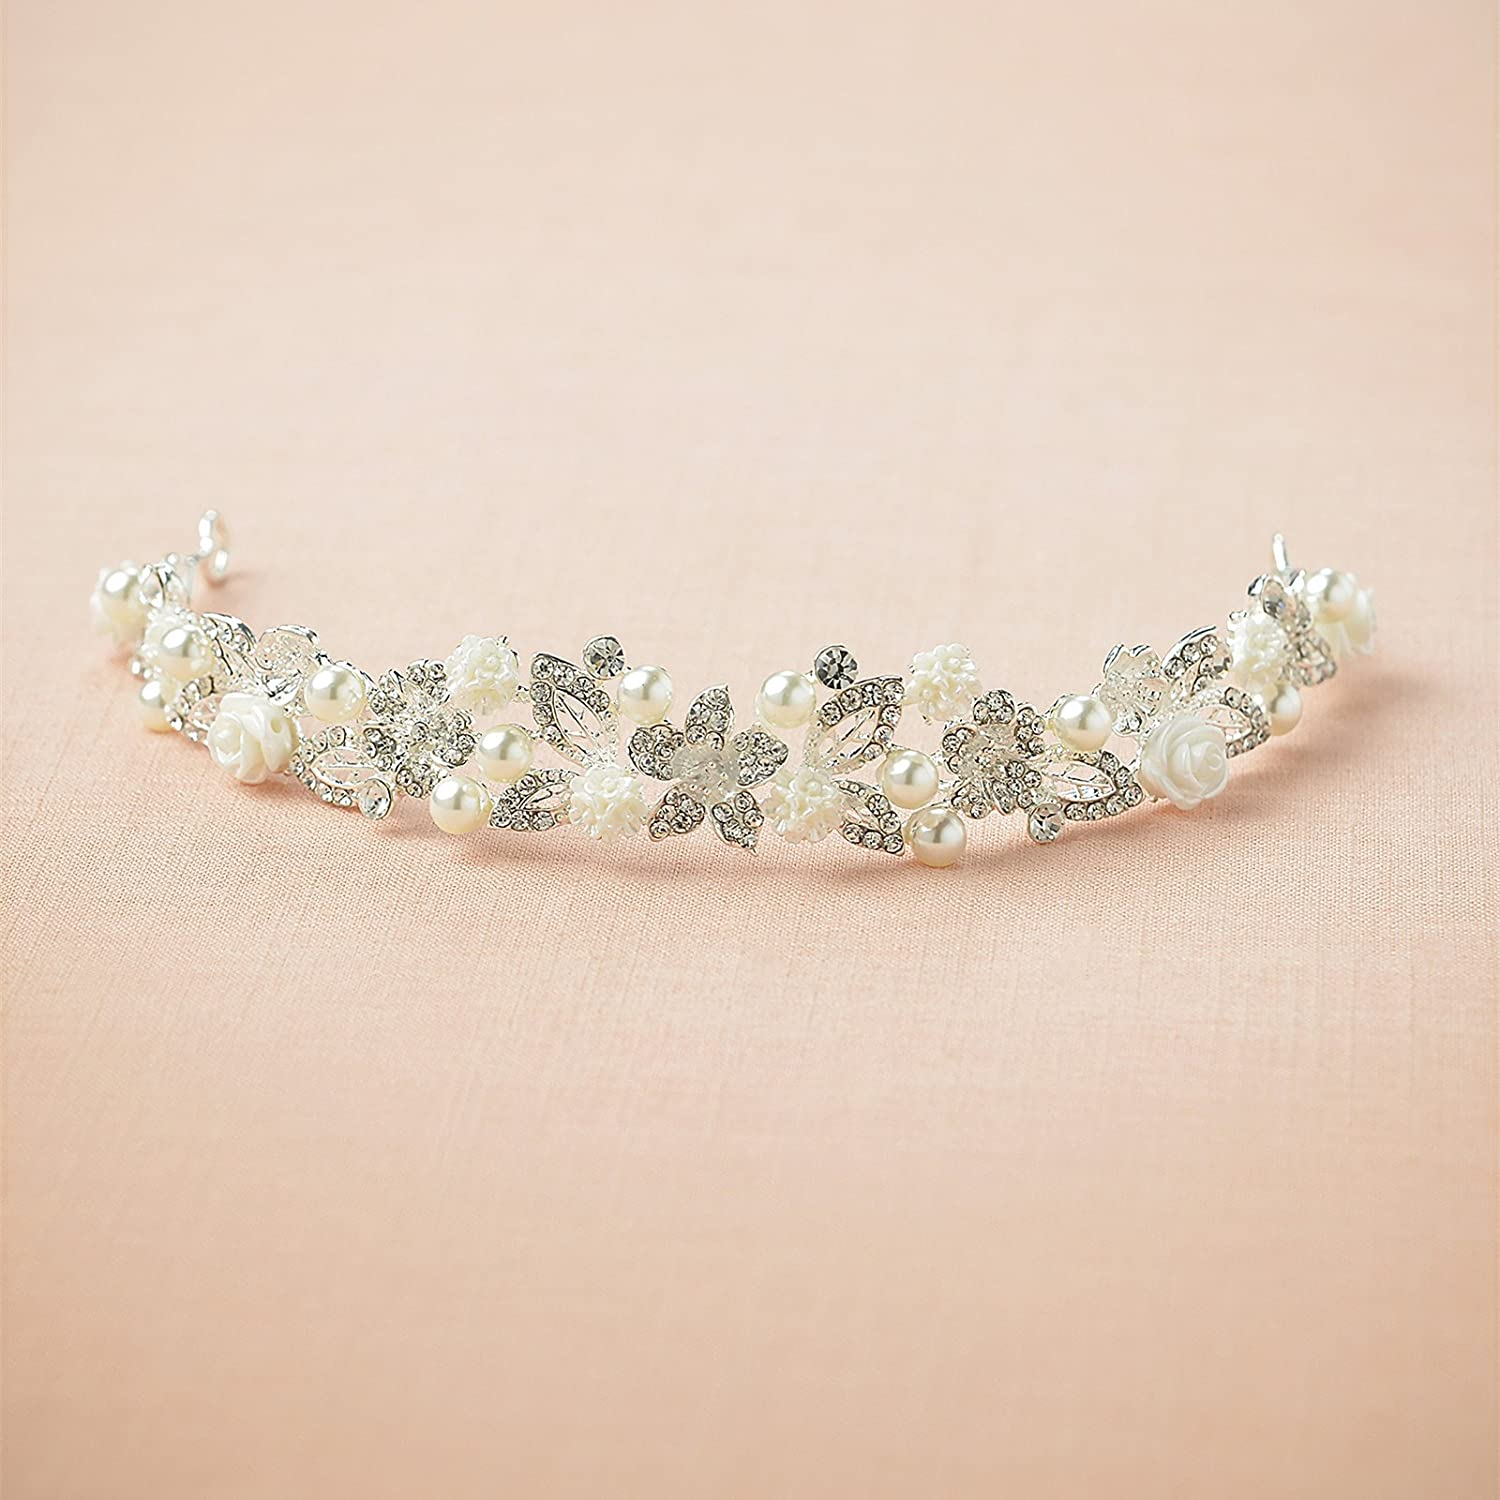 New awei crystal tiara wedding headband pearl flower crown headband new awei crystal tiara wedding headband pearl flower crown headband women hair headpiece izmirmasajfo